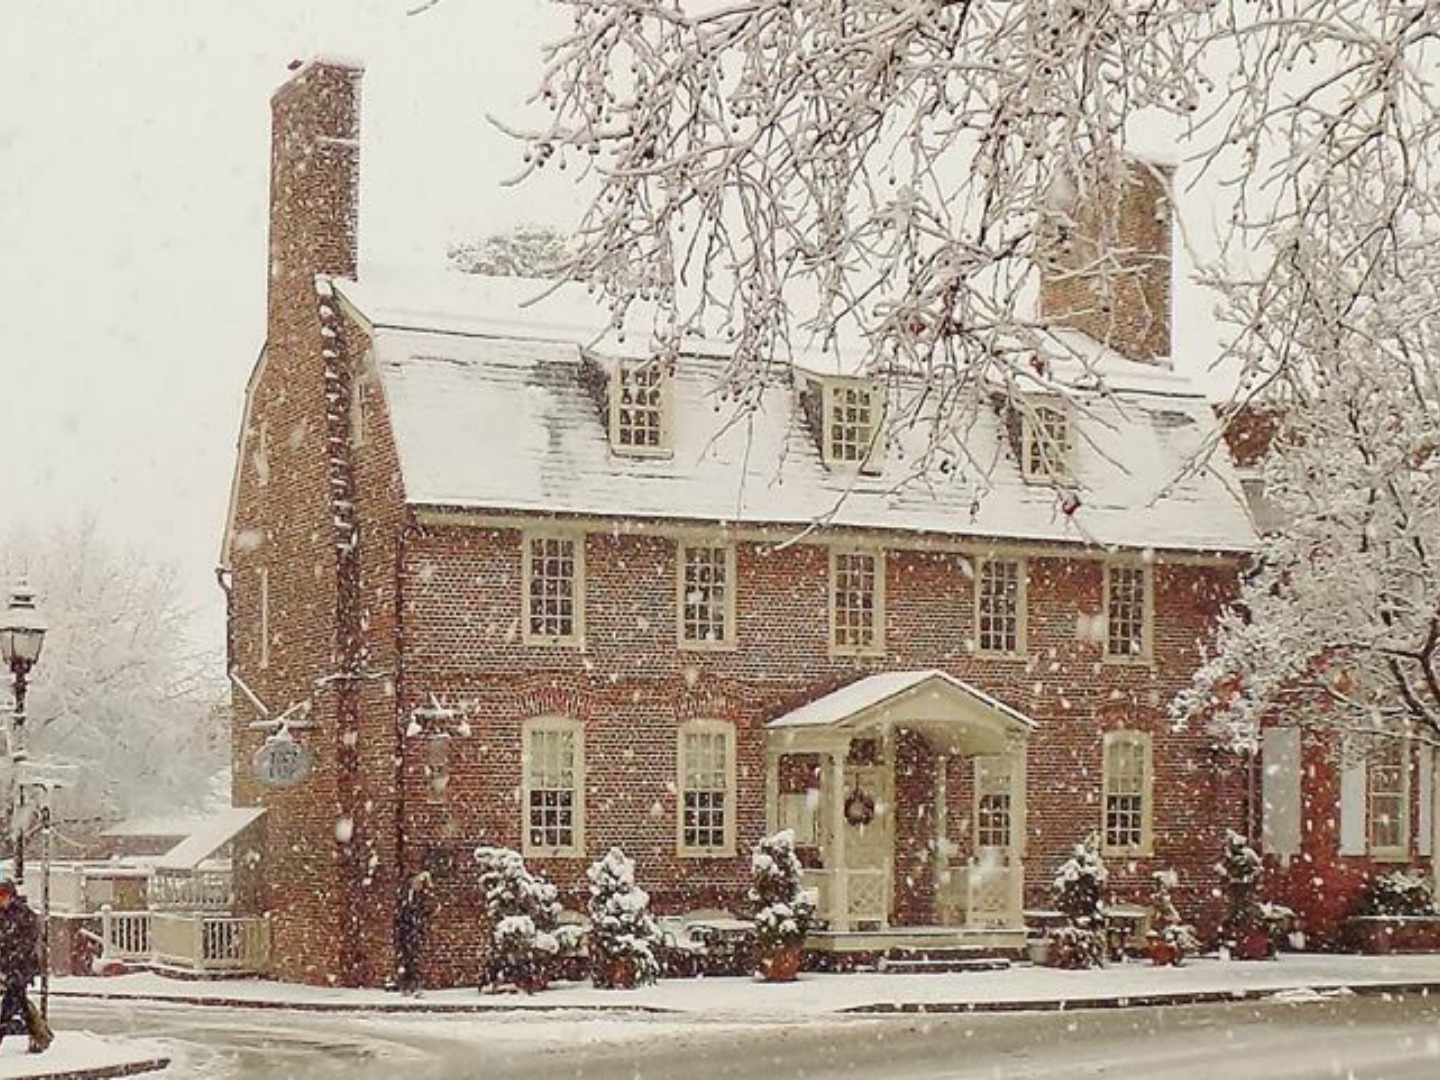 A building covered in snow at Reynolds Tavern.